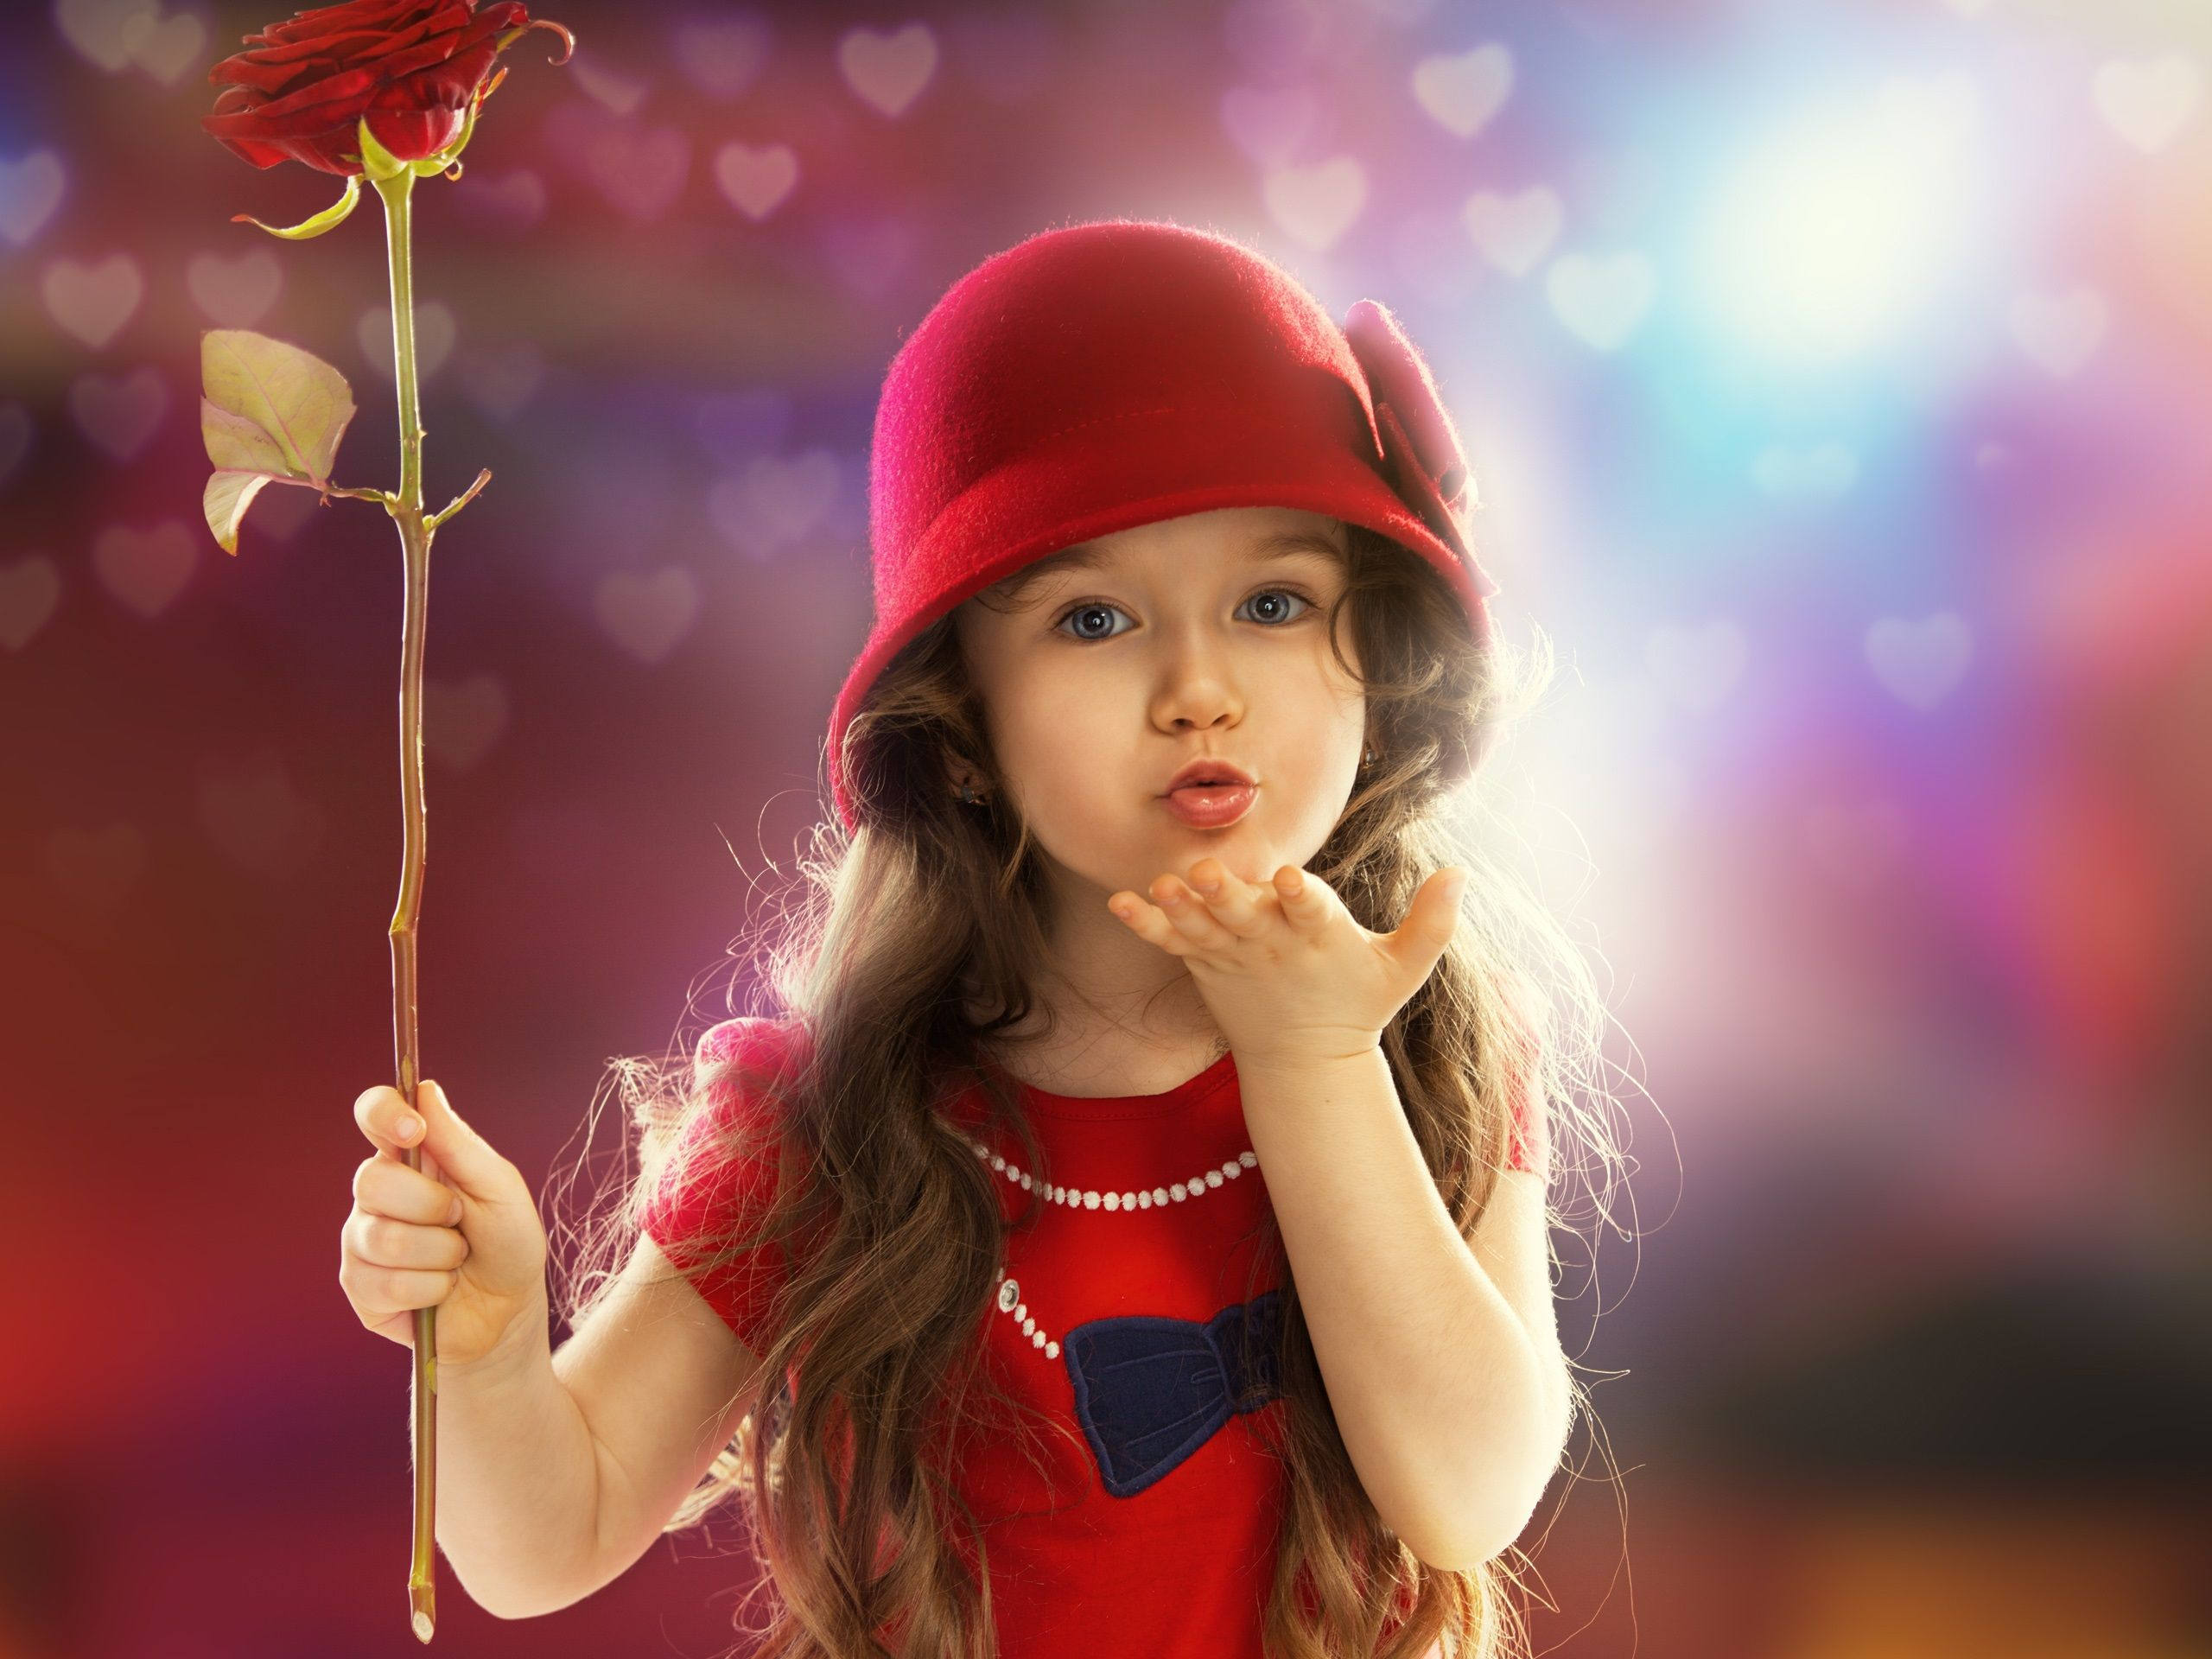 cute red dress little girl, child, sweet kiss wallpaper 2560x1920